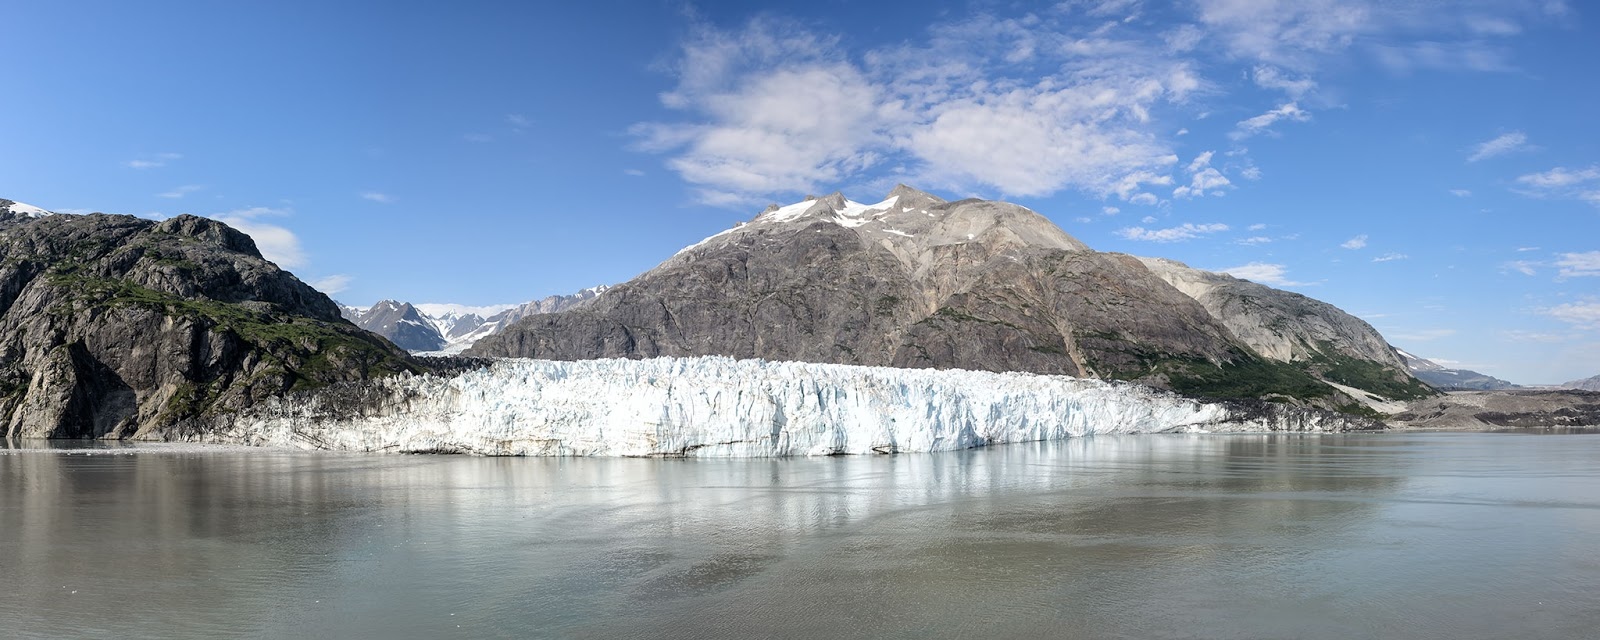 Panorama Photo of Margerie Glacier in Glacier Bay National Park